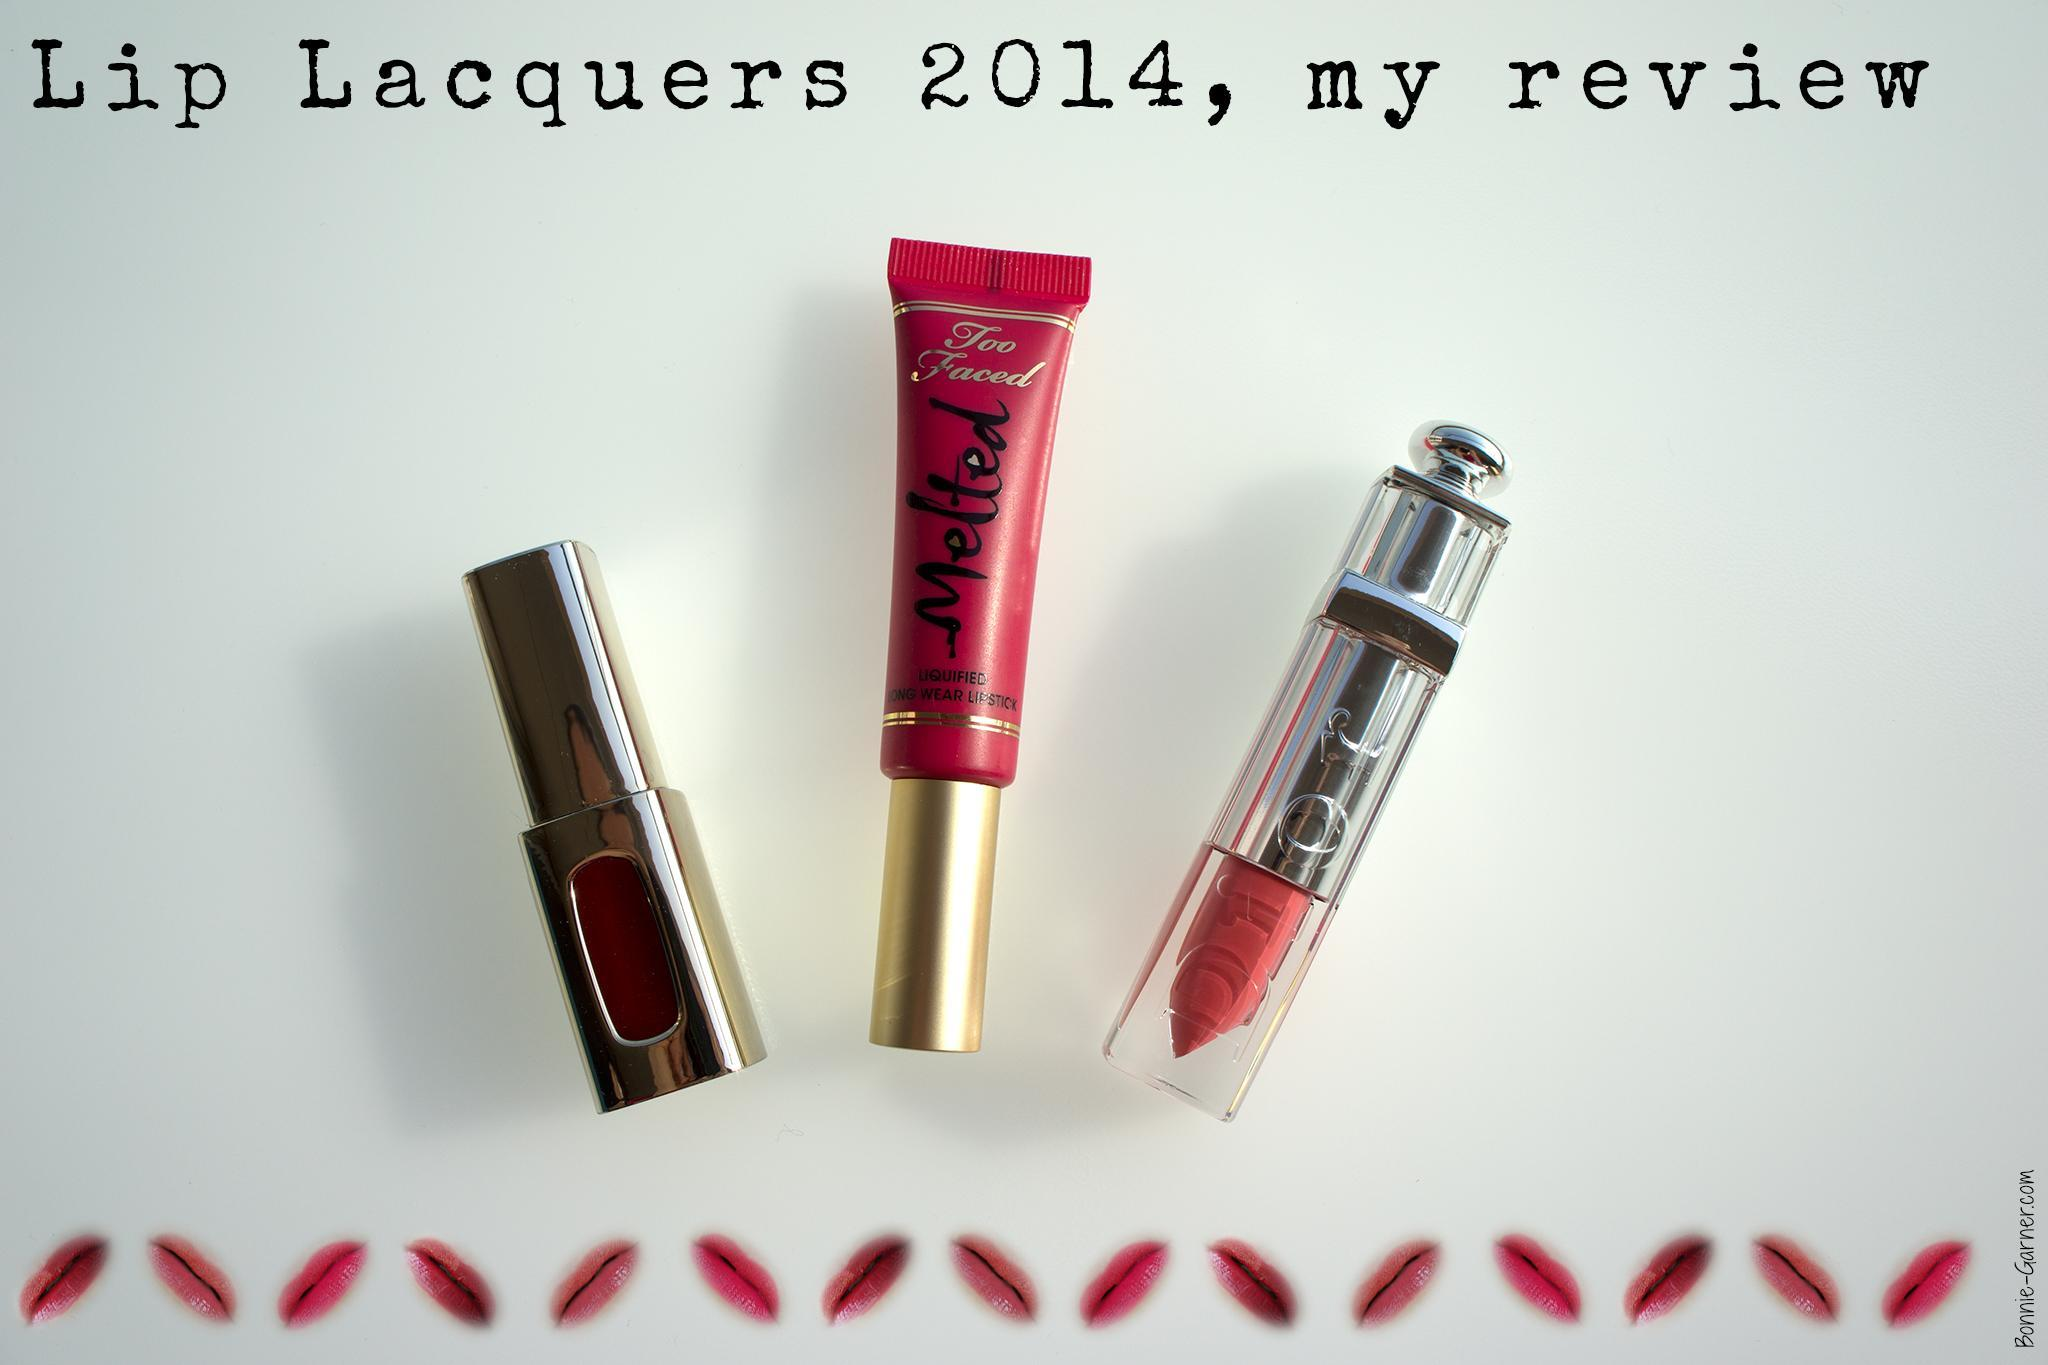 Lip Lacquers 2014 my review